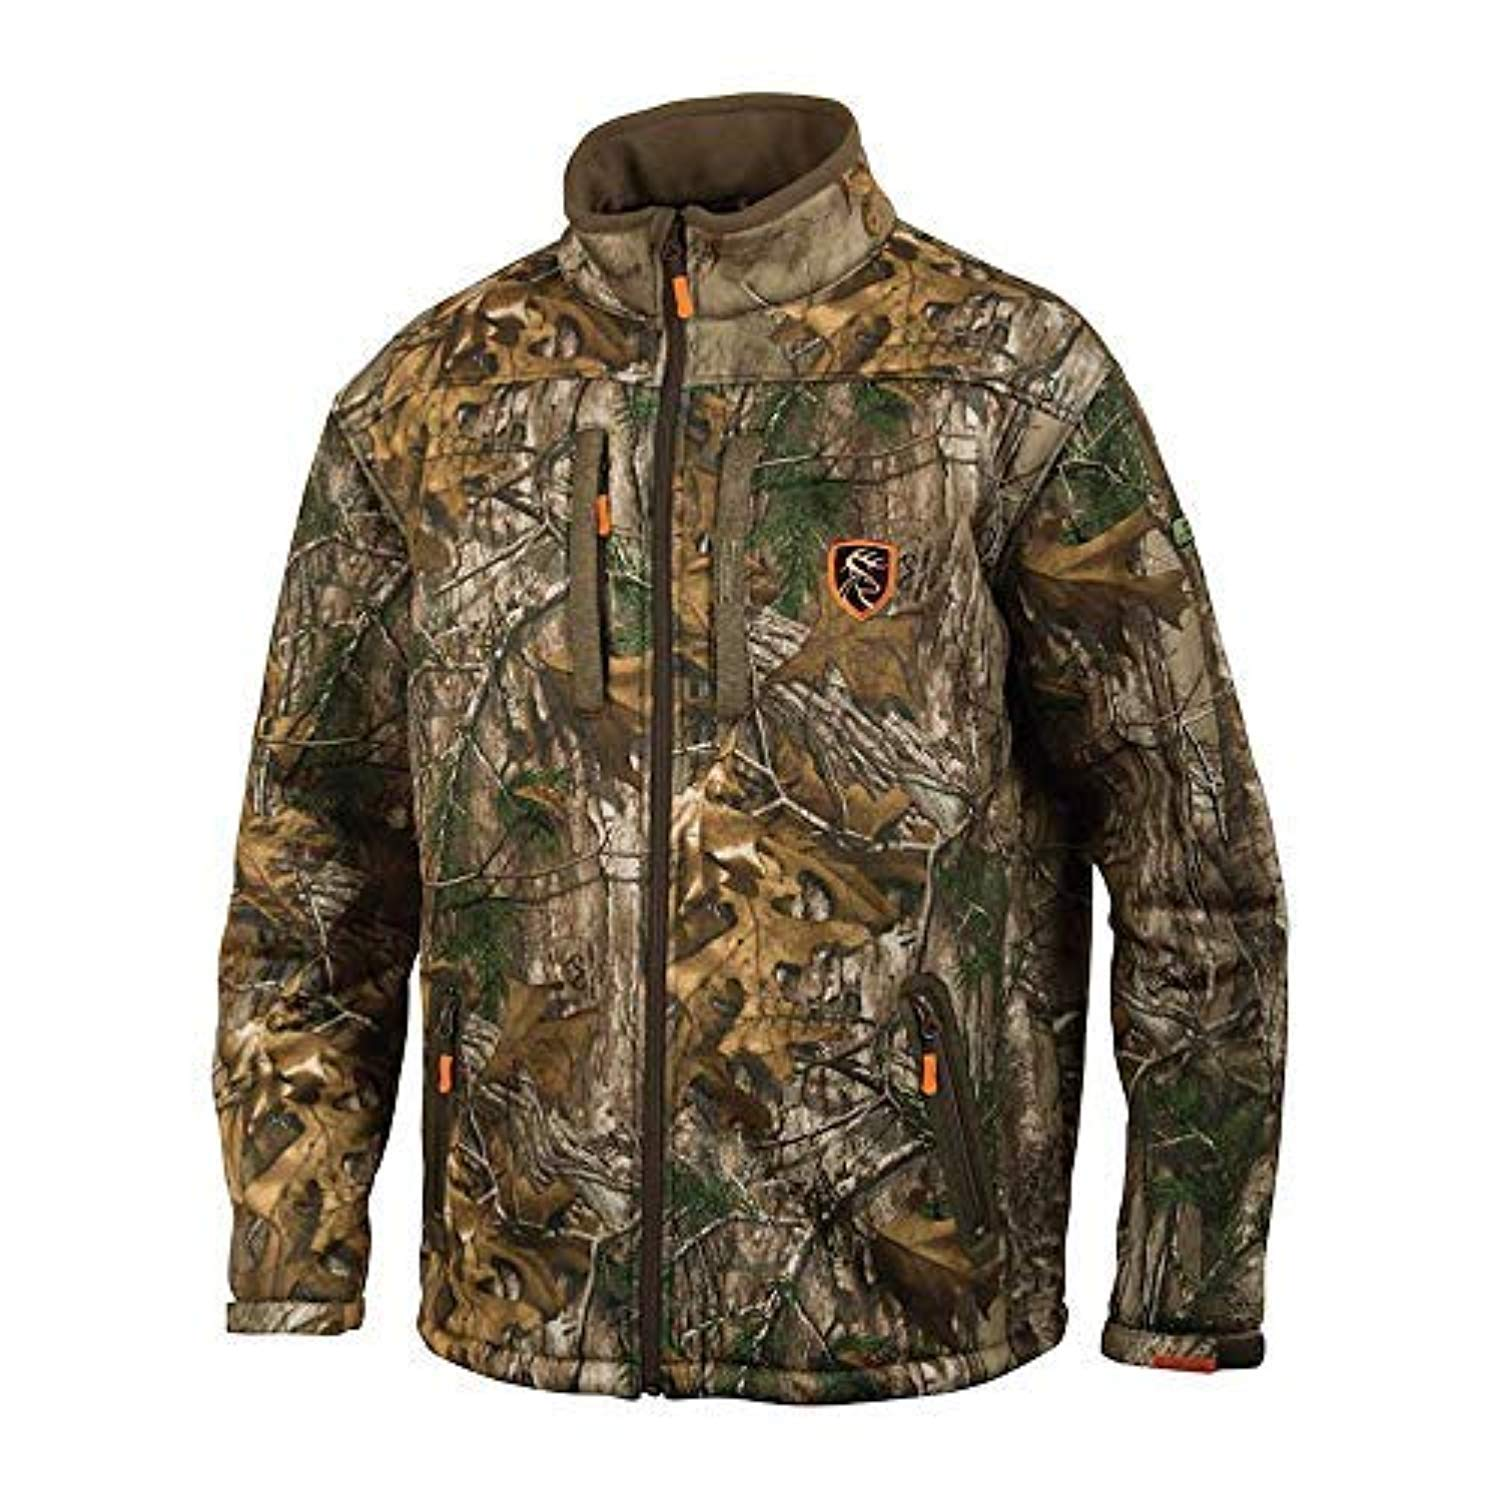 Drake Youth Silencer Full Zip Jacket with Agion Active XL - Realtree Edge (10) by Drake